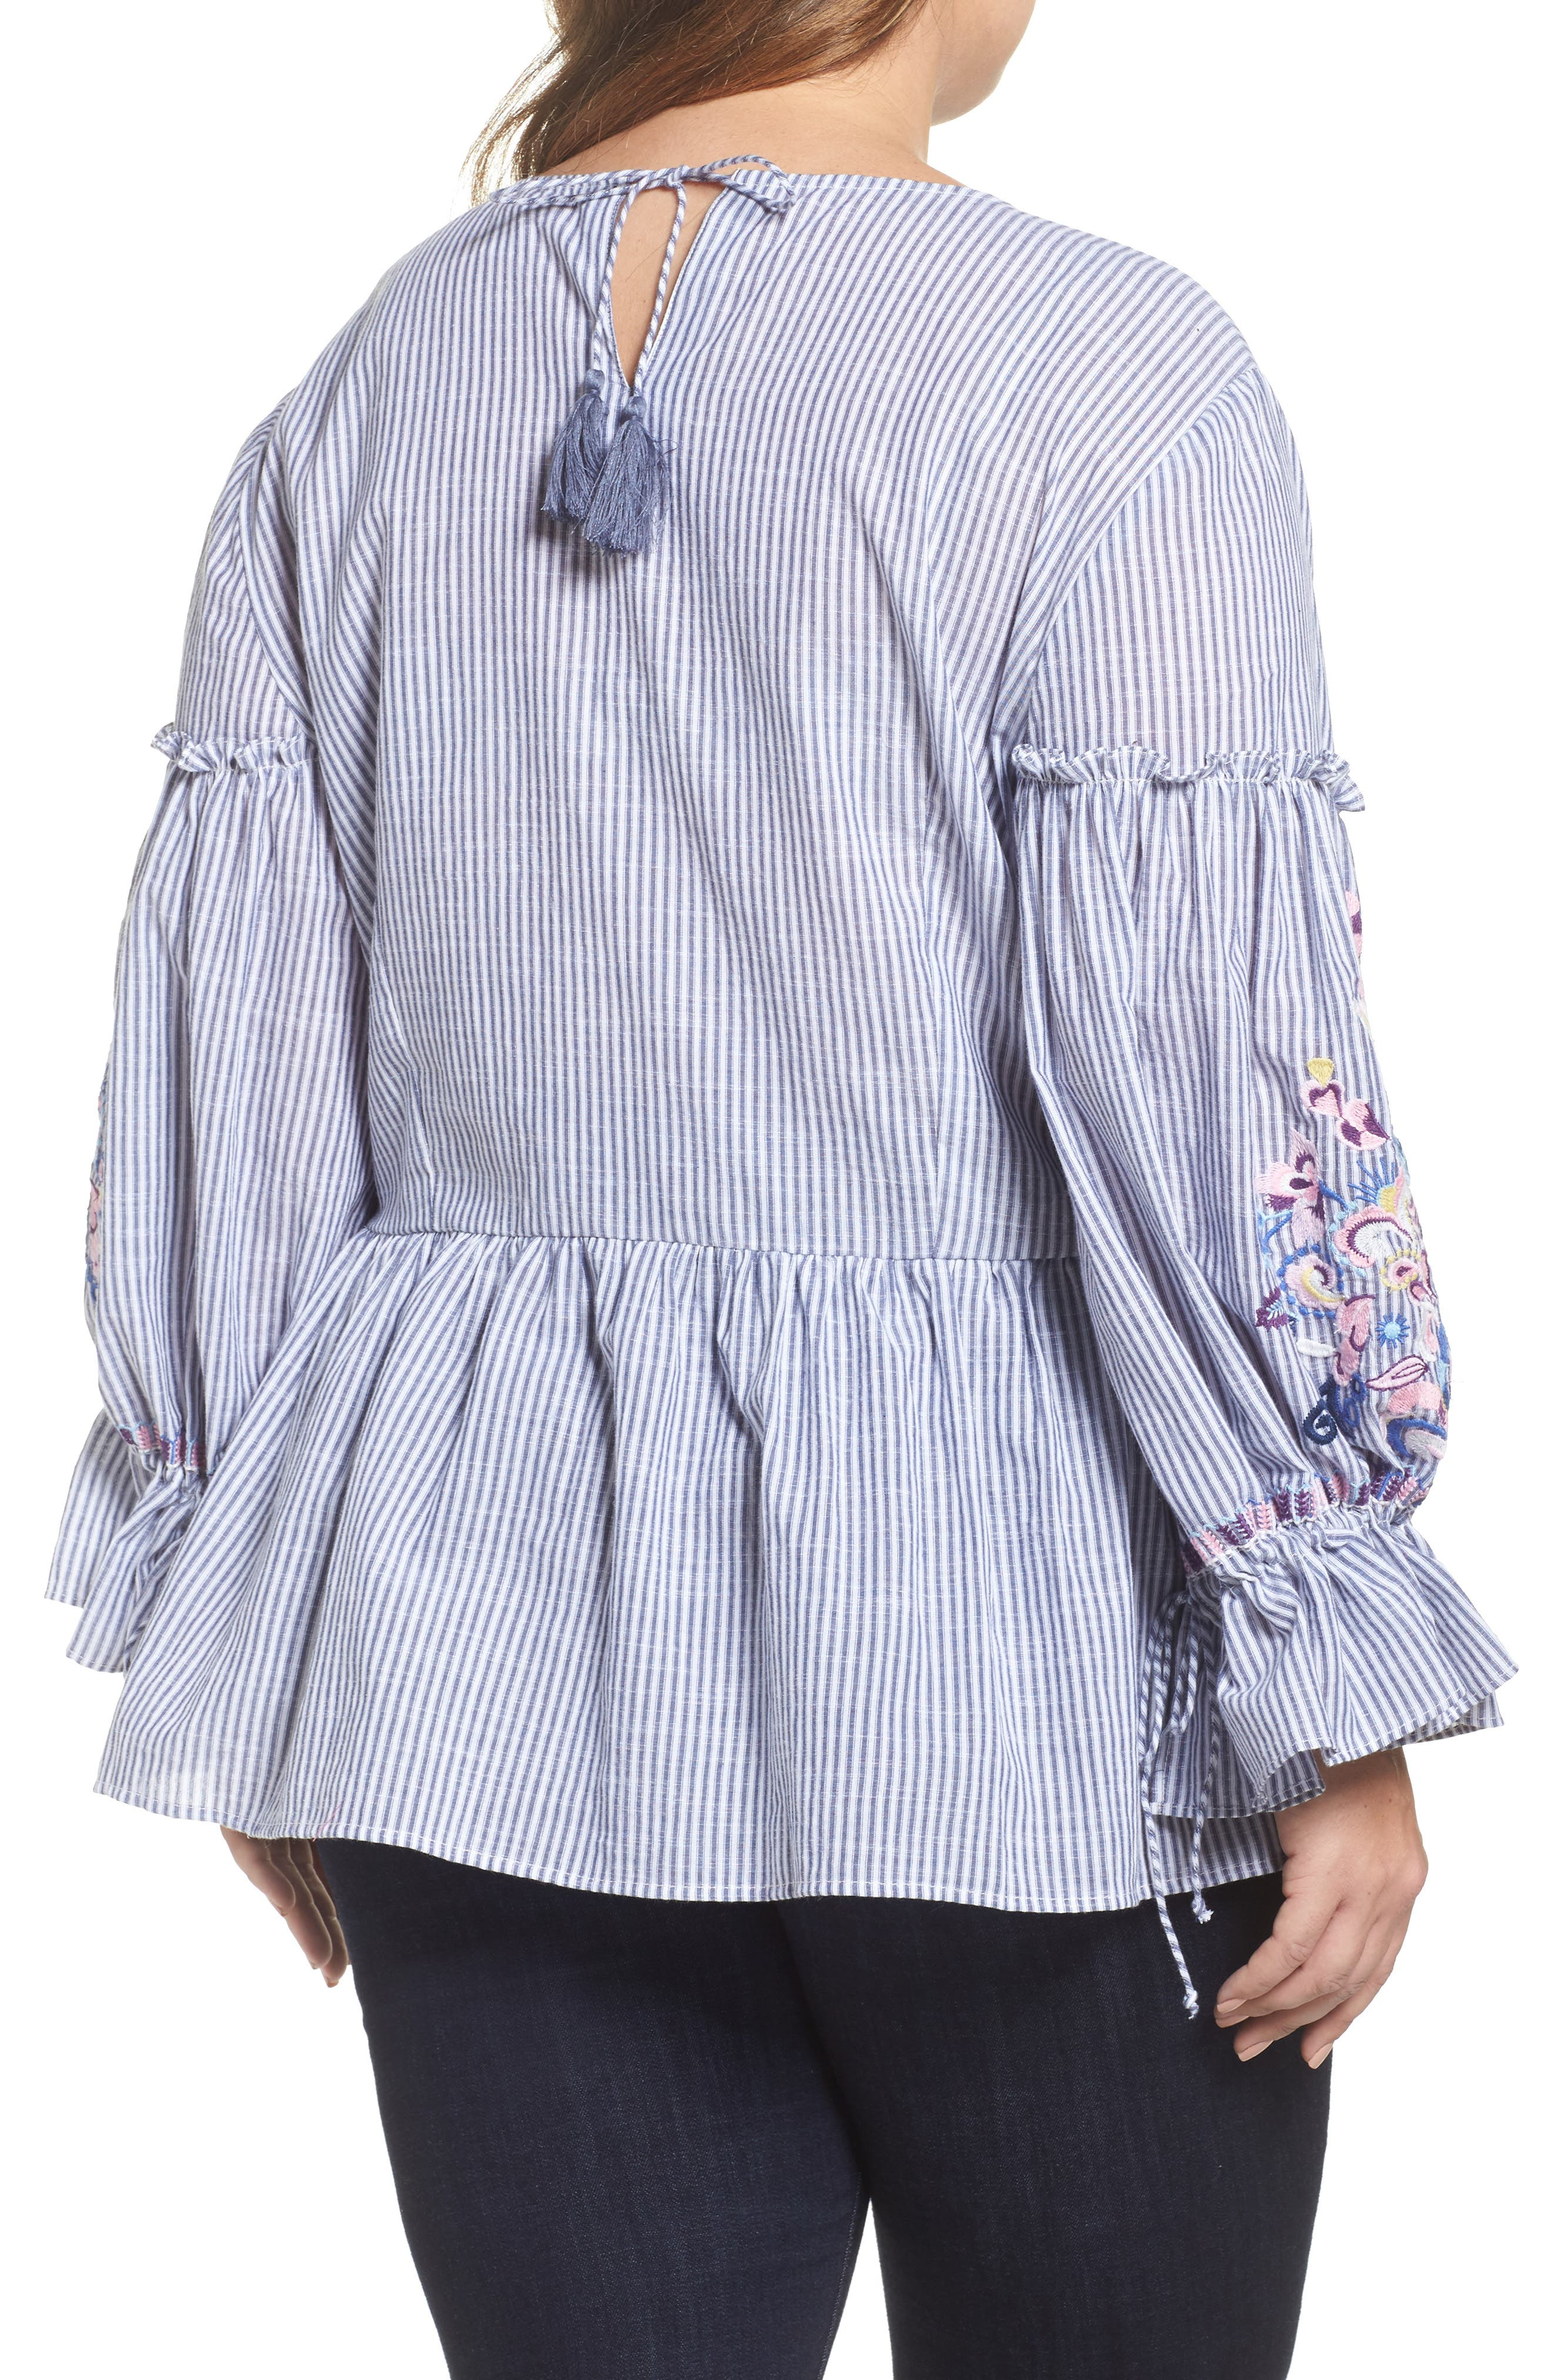 Embroidered Blouse,                             Alternate thumbnail 2, color,                             Blue-White